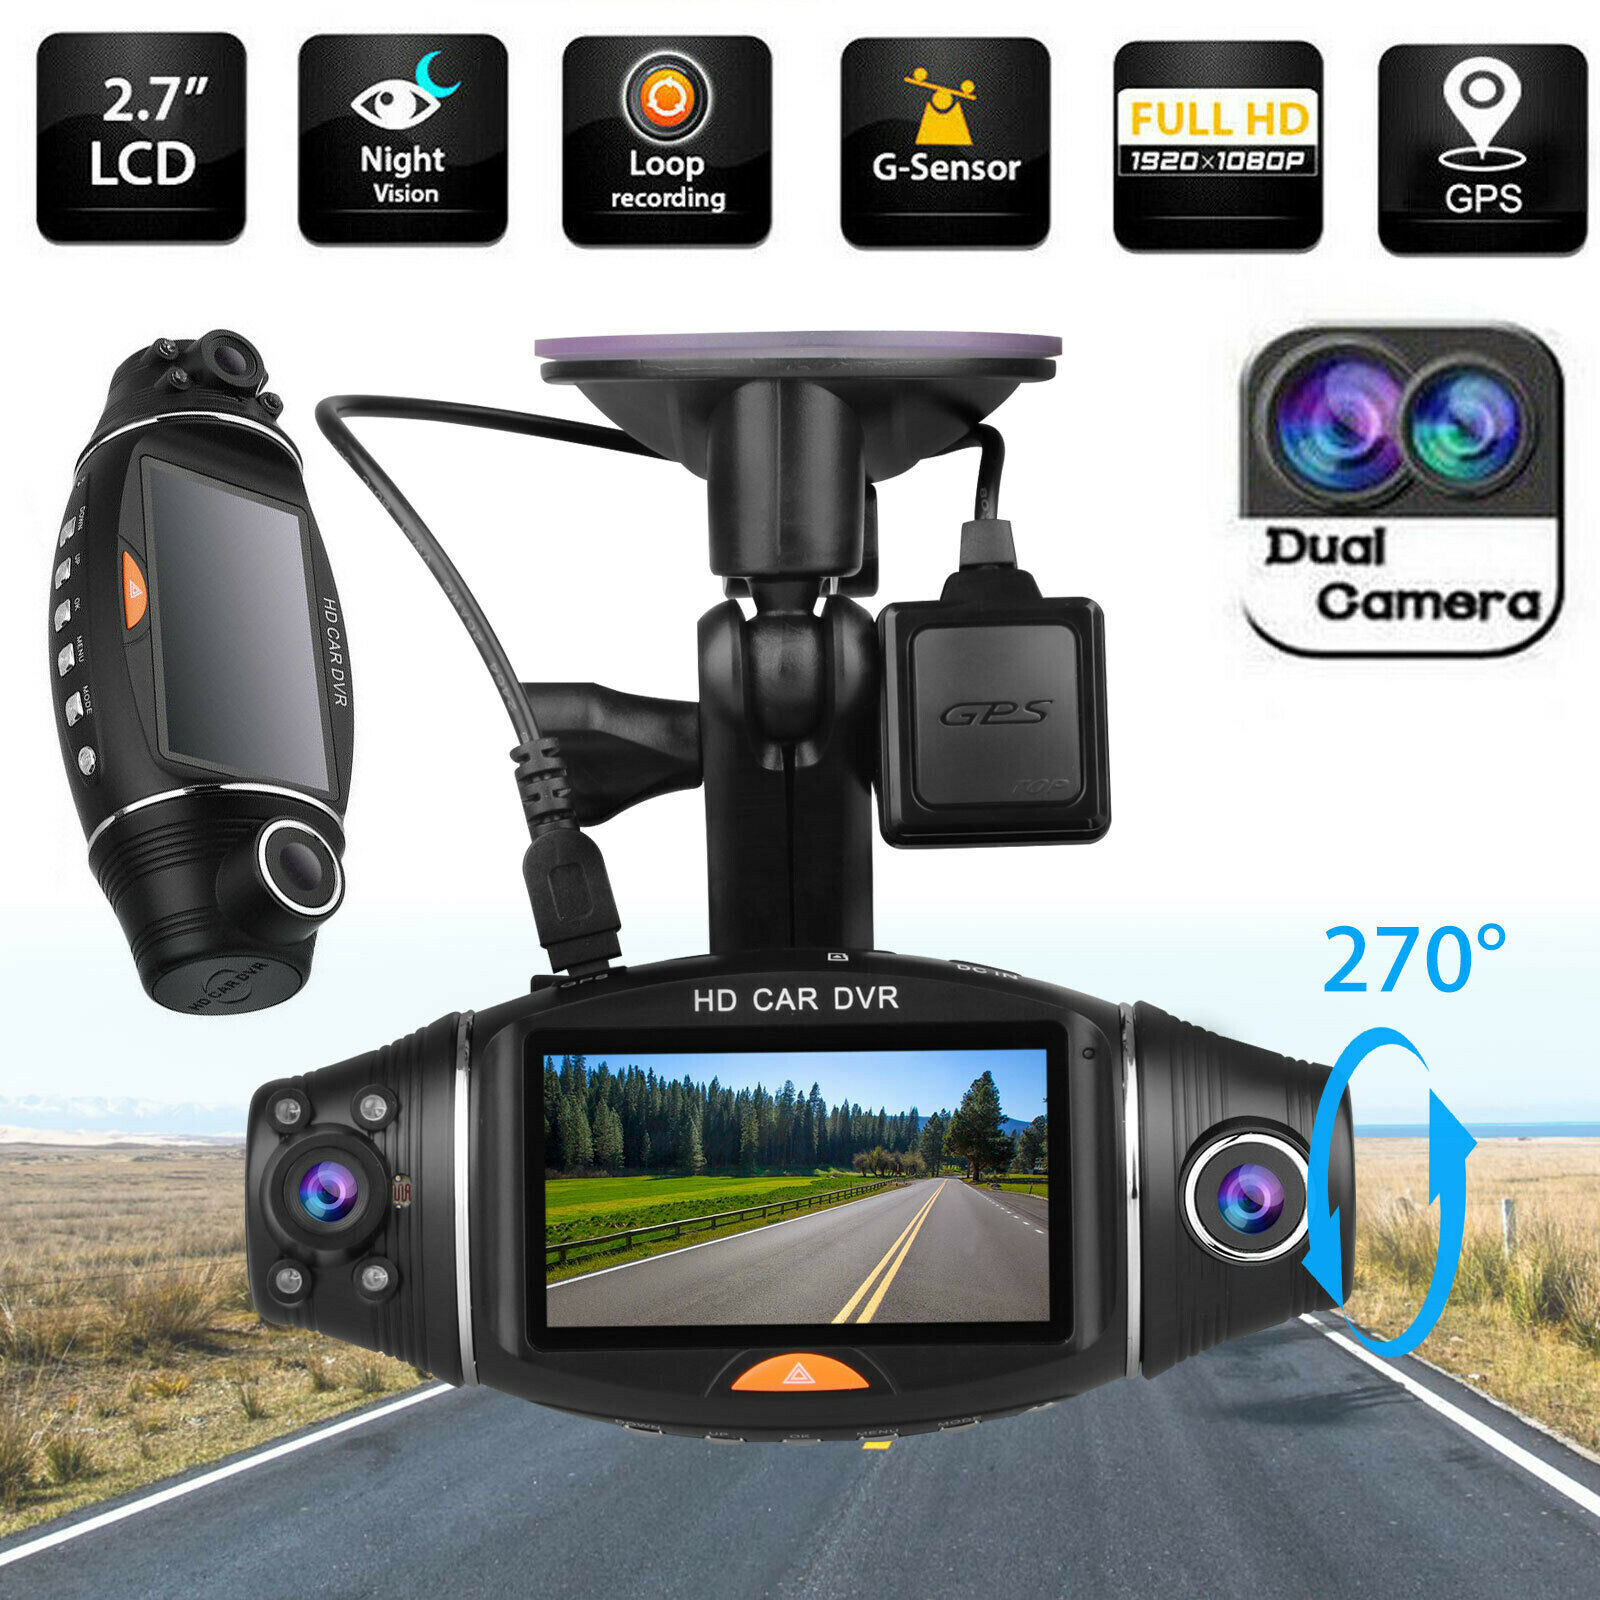 Dual Lens LCD Car DVR Camera Full HD 1080P GPS Dash Cam Video Recorder with Rear View Night Verison G sensor Car Dash Cam DVRs|DVR/Dash Camera| - AliExpress